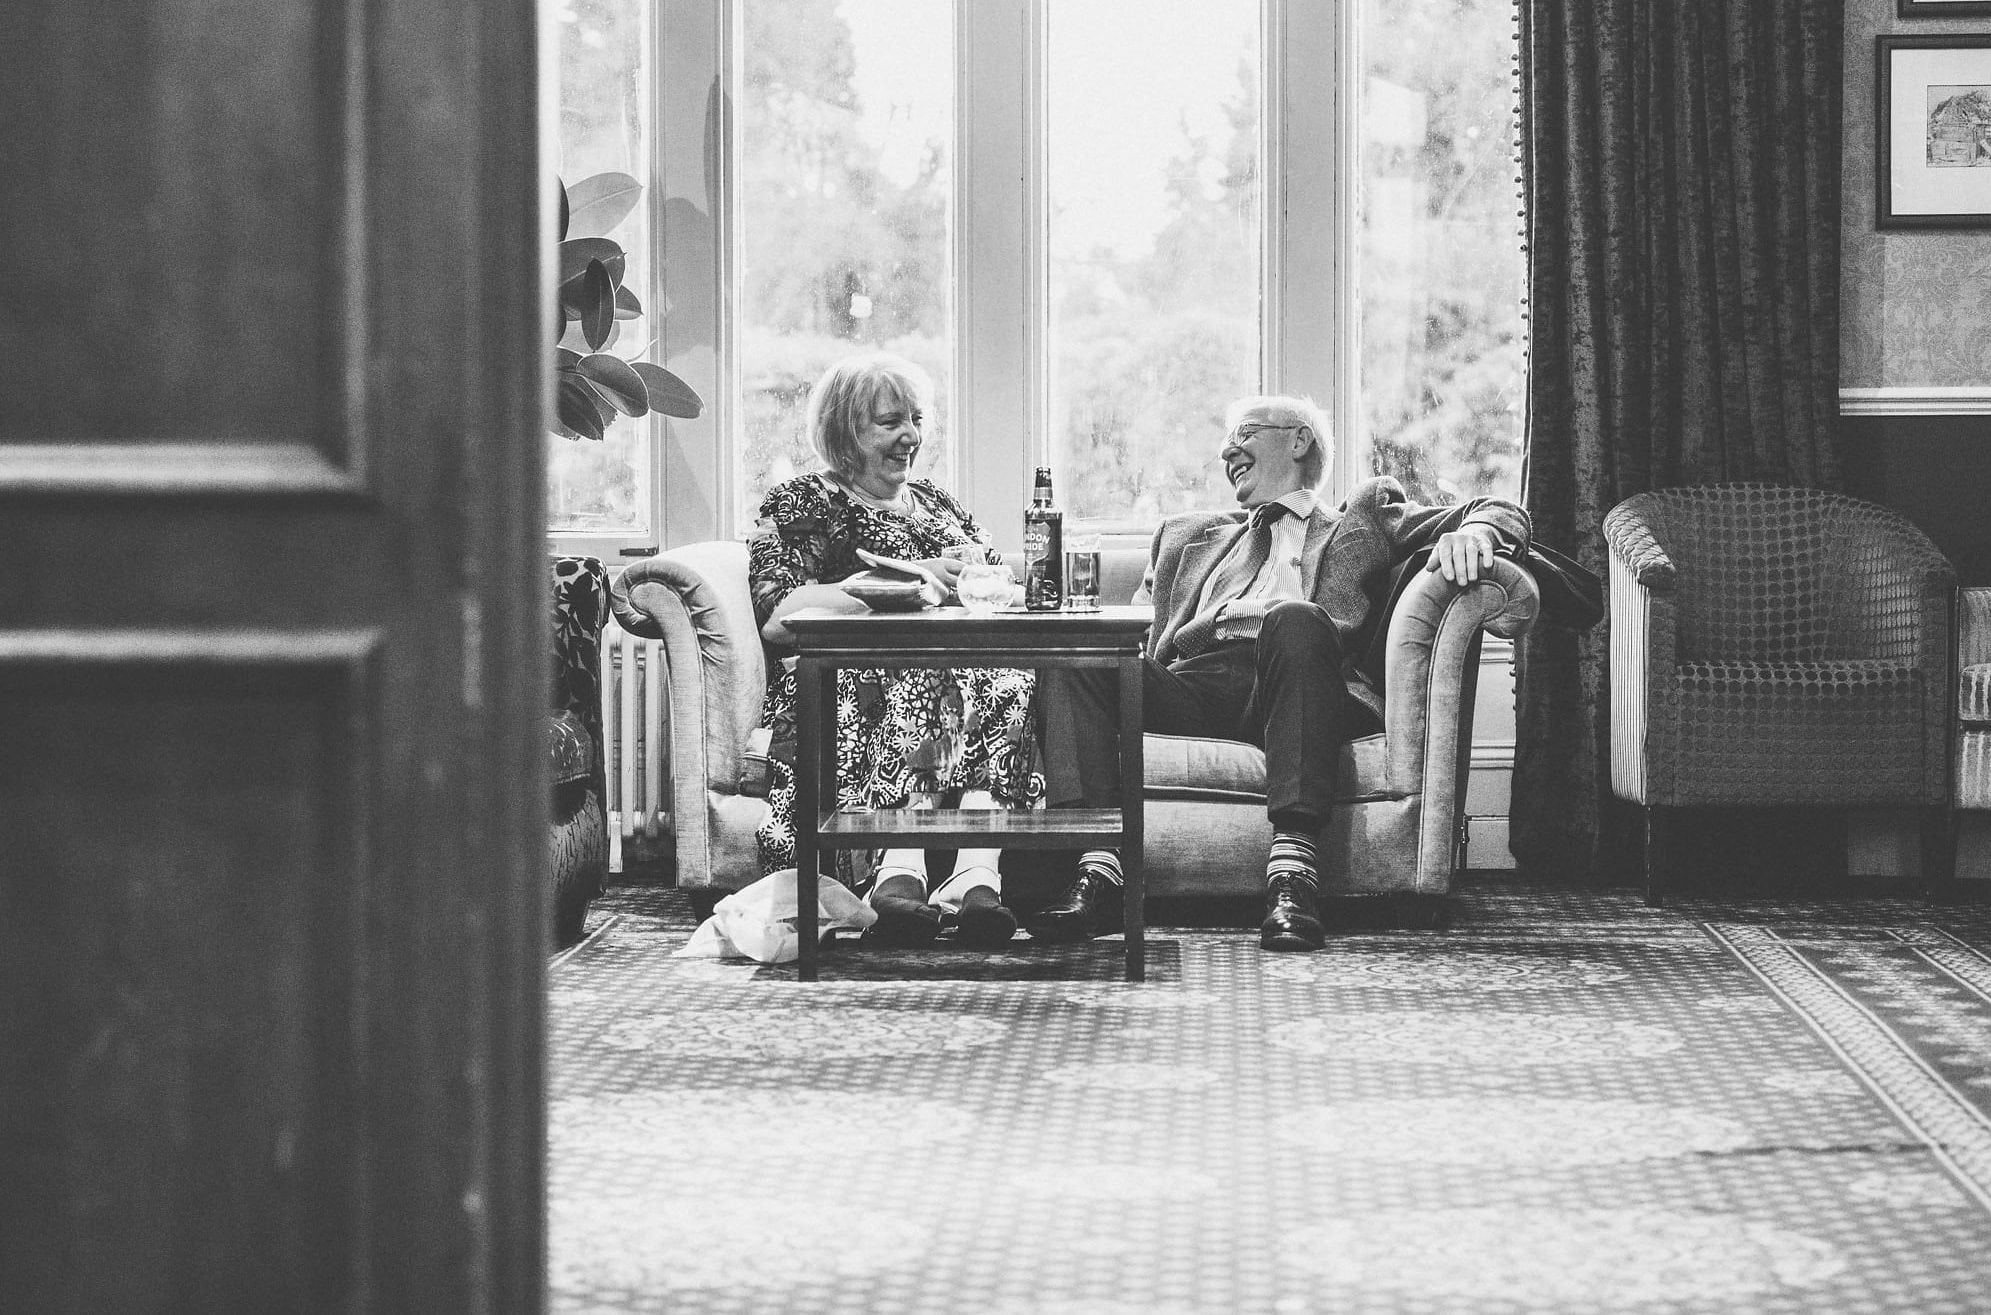 Guests relax together on the sofa at wedding reception